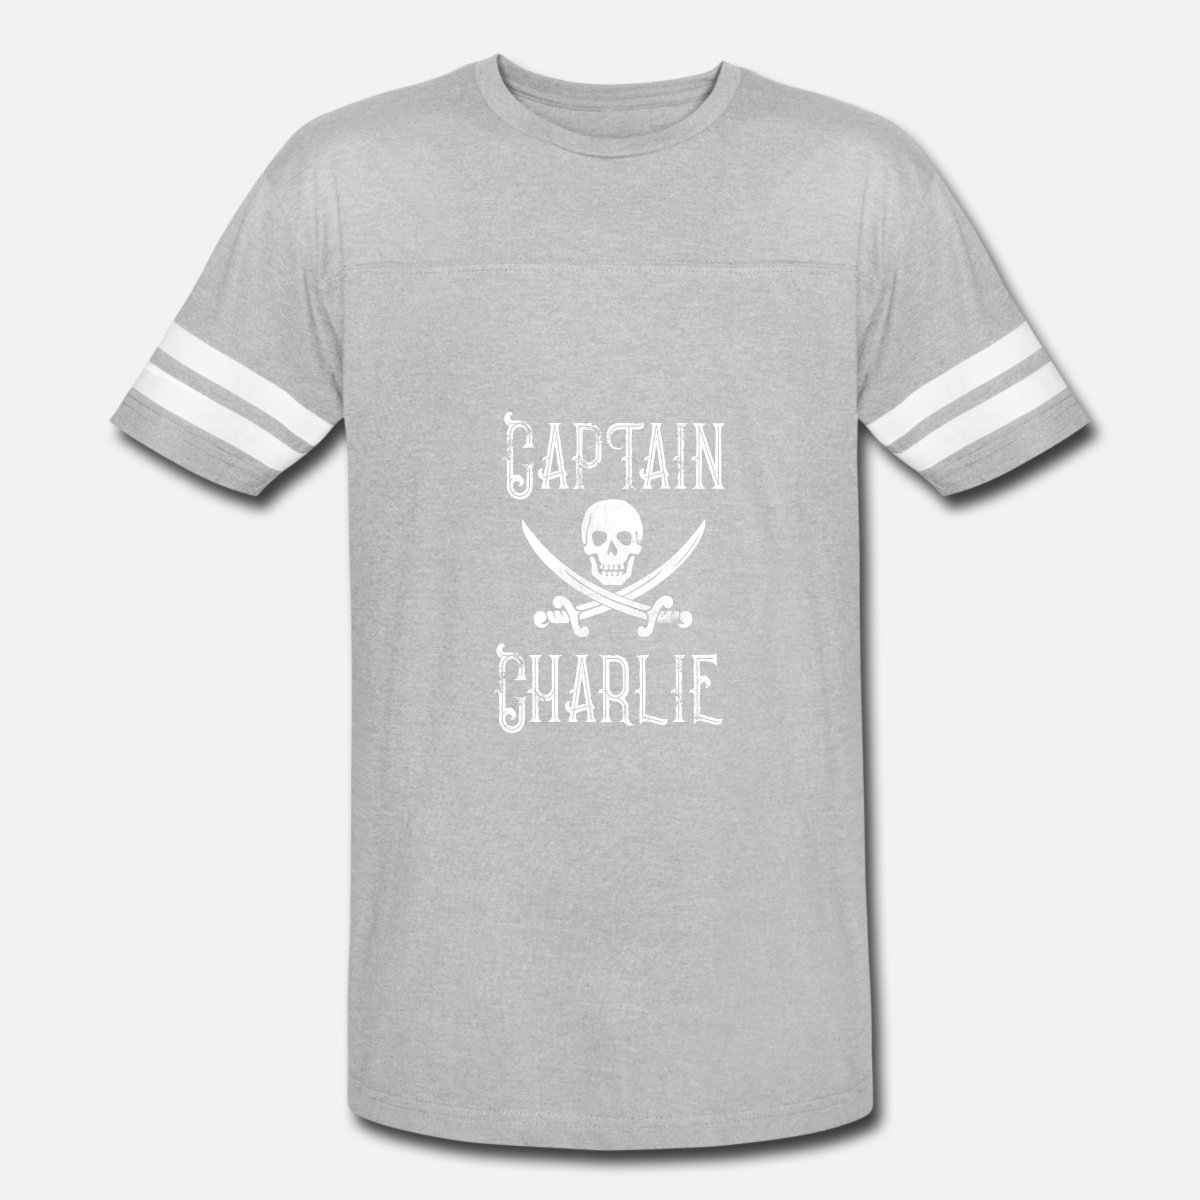 Personalized Pirate Shirt Vintage Pirates Shirt Personal Name Pirate TShirt  Captain Charlie Vintage Sport T-Shirt - heather gray/white